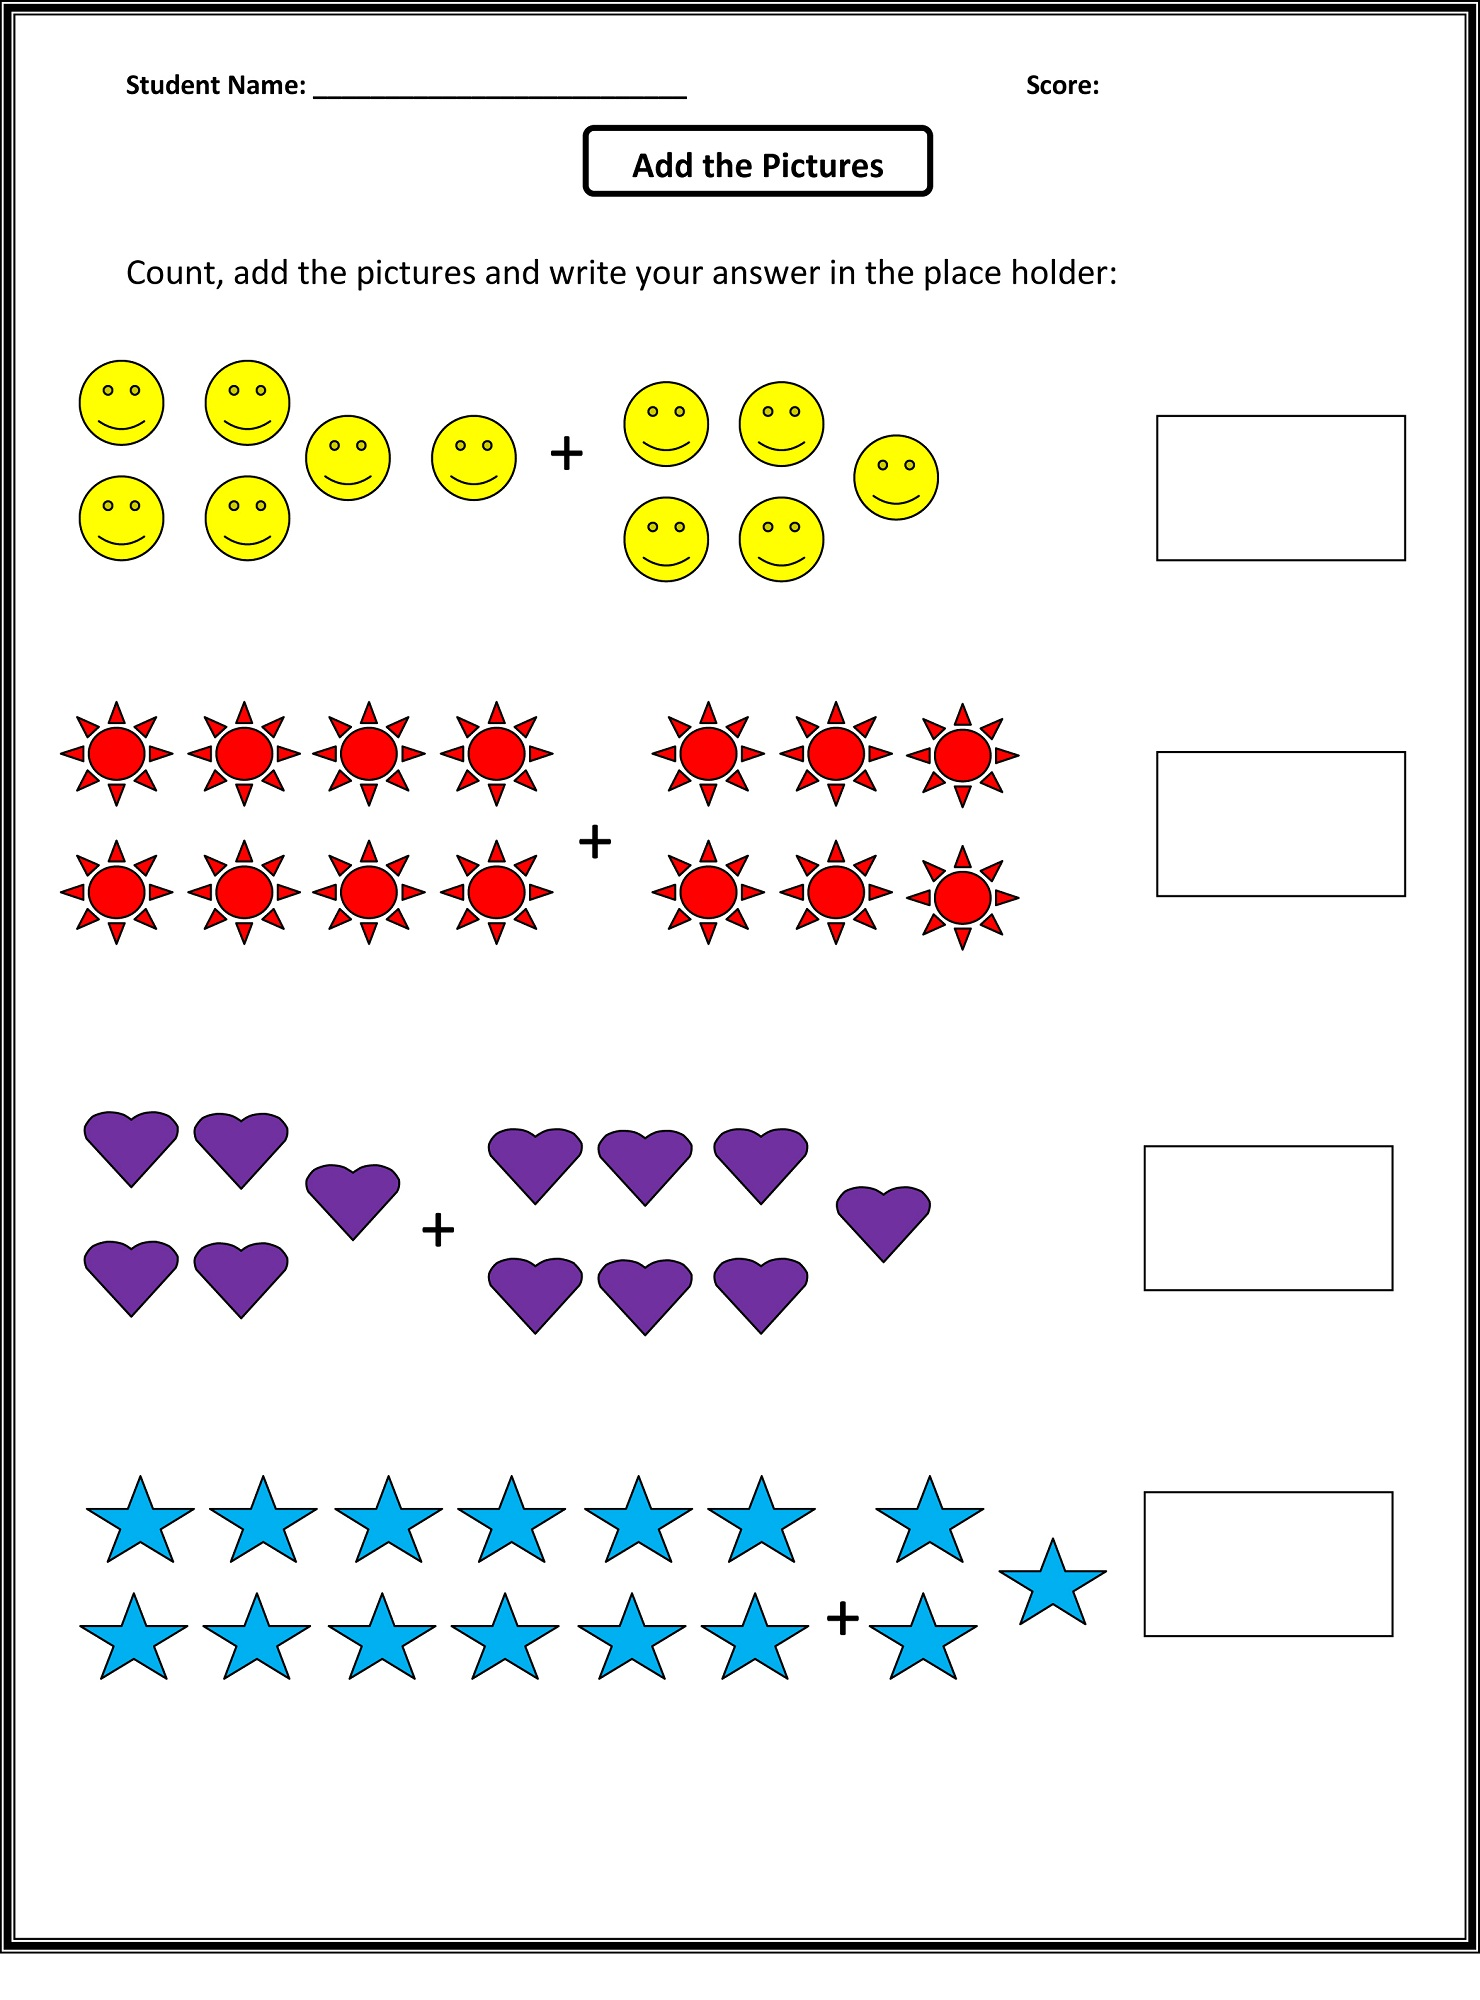 Worksheet Grade 1 Homework Sheets activity worksheets for grade 1 memarchoapraga learning shelter